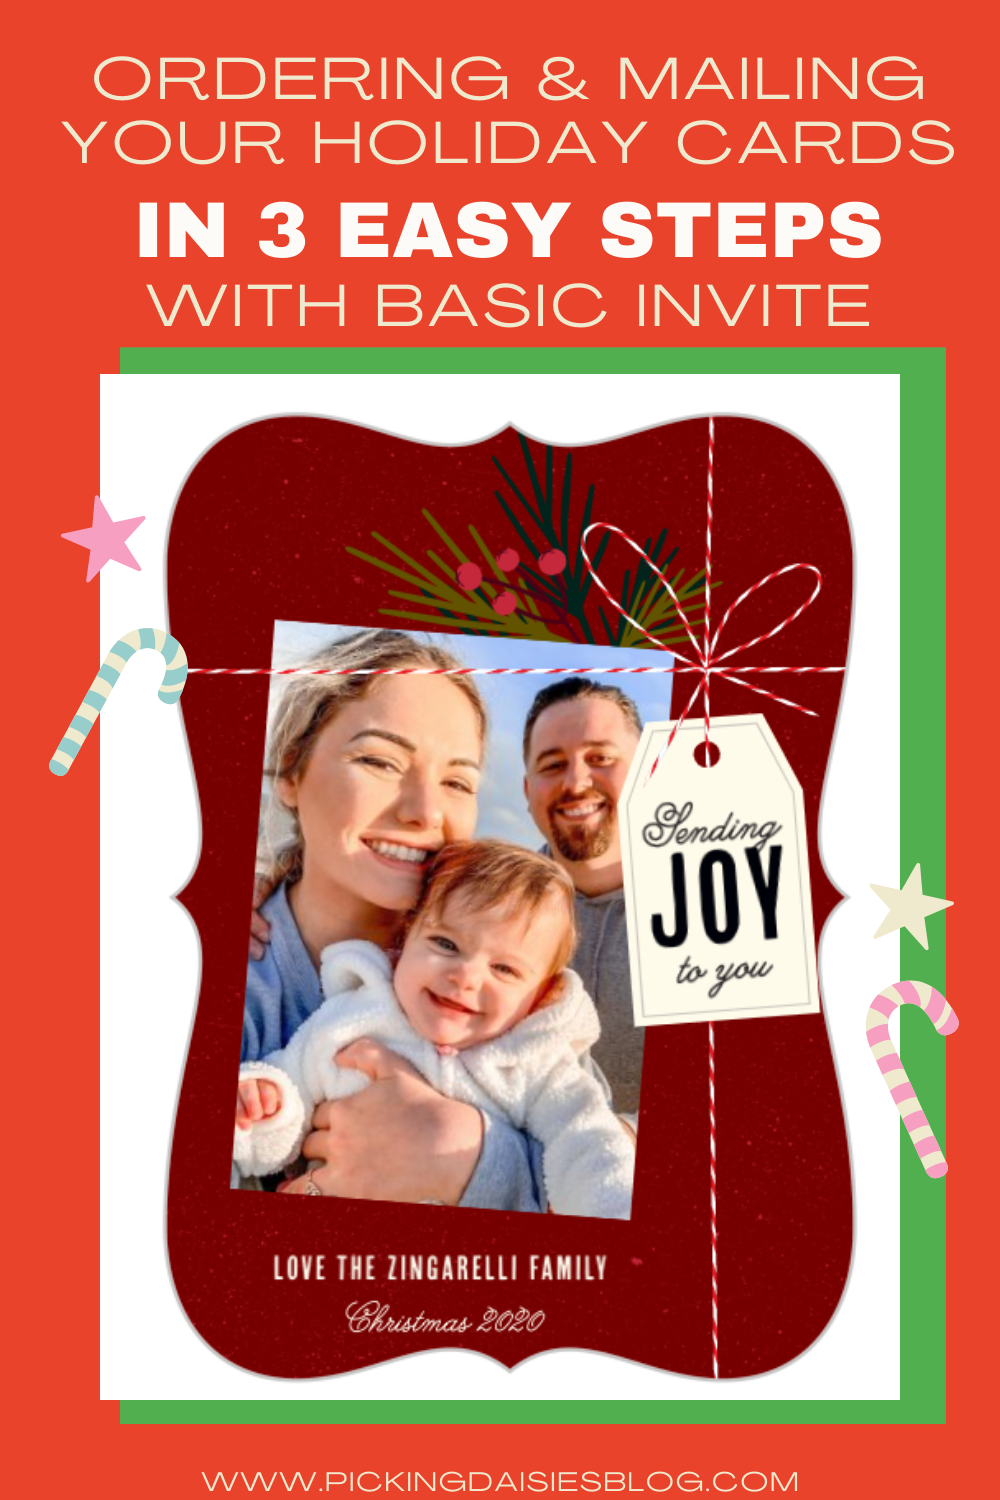 Ordering & Mailing Your Holiday Cards in 3 Easy Steps with Basic Invite